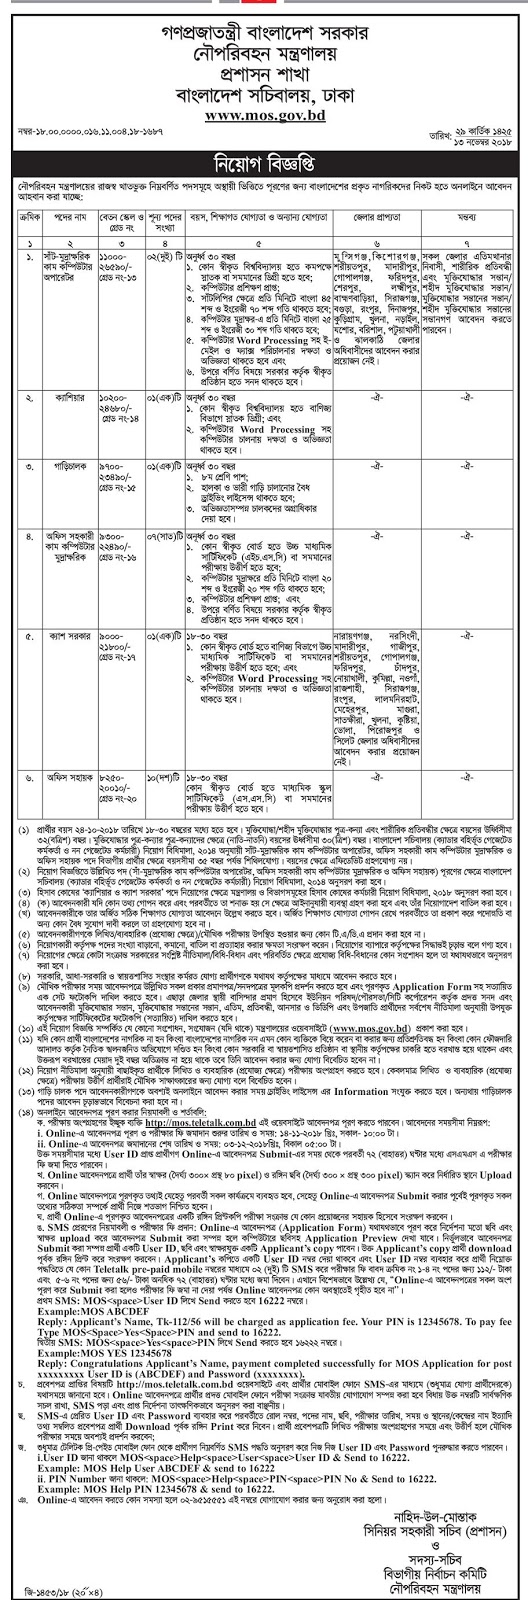 Ministry of Shipping (MOS) Job Circular 2018